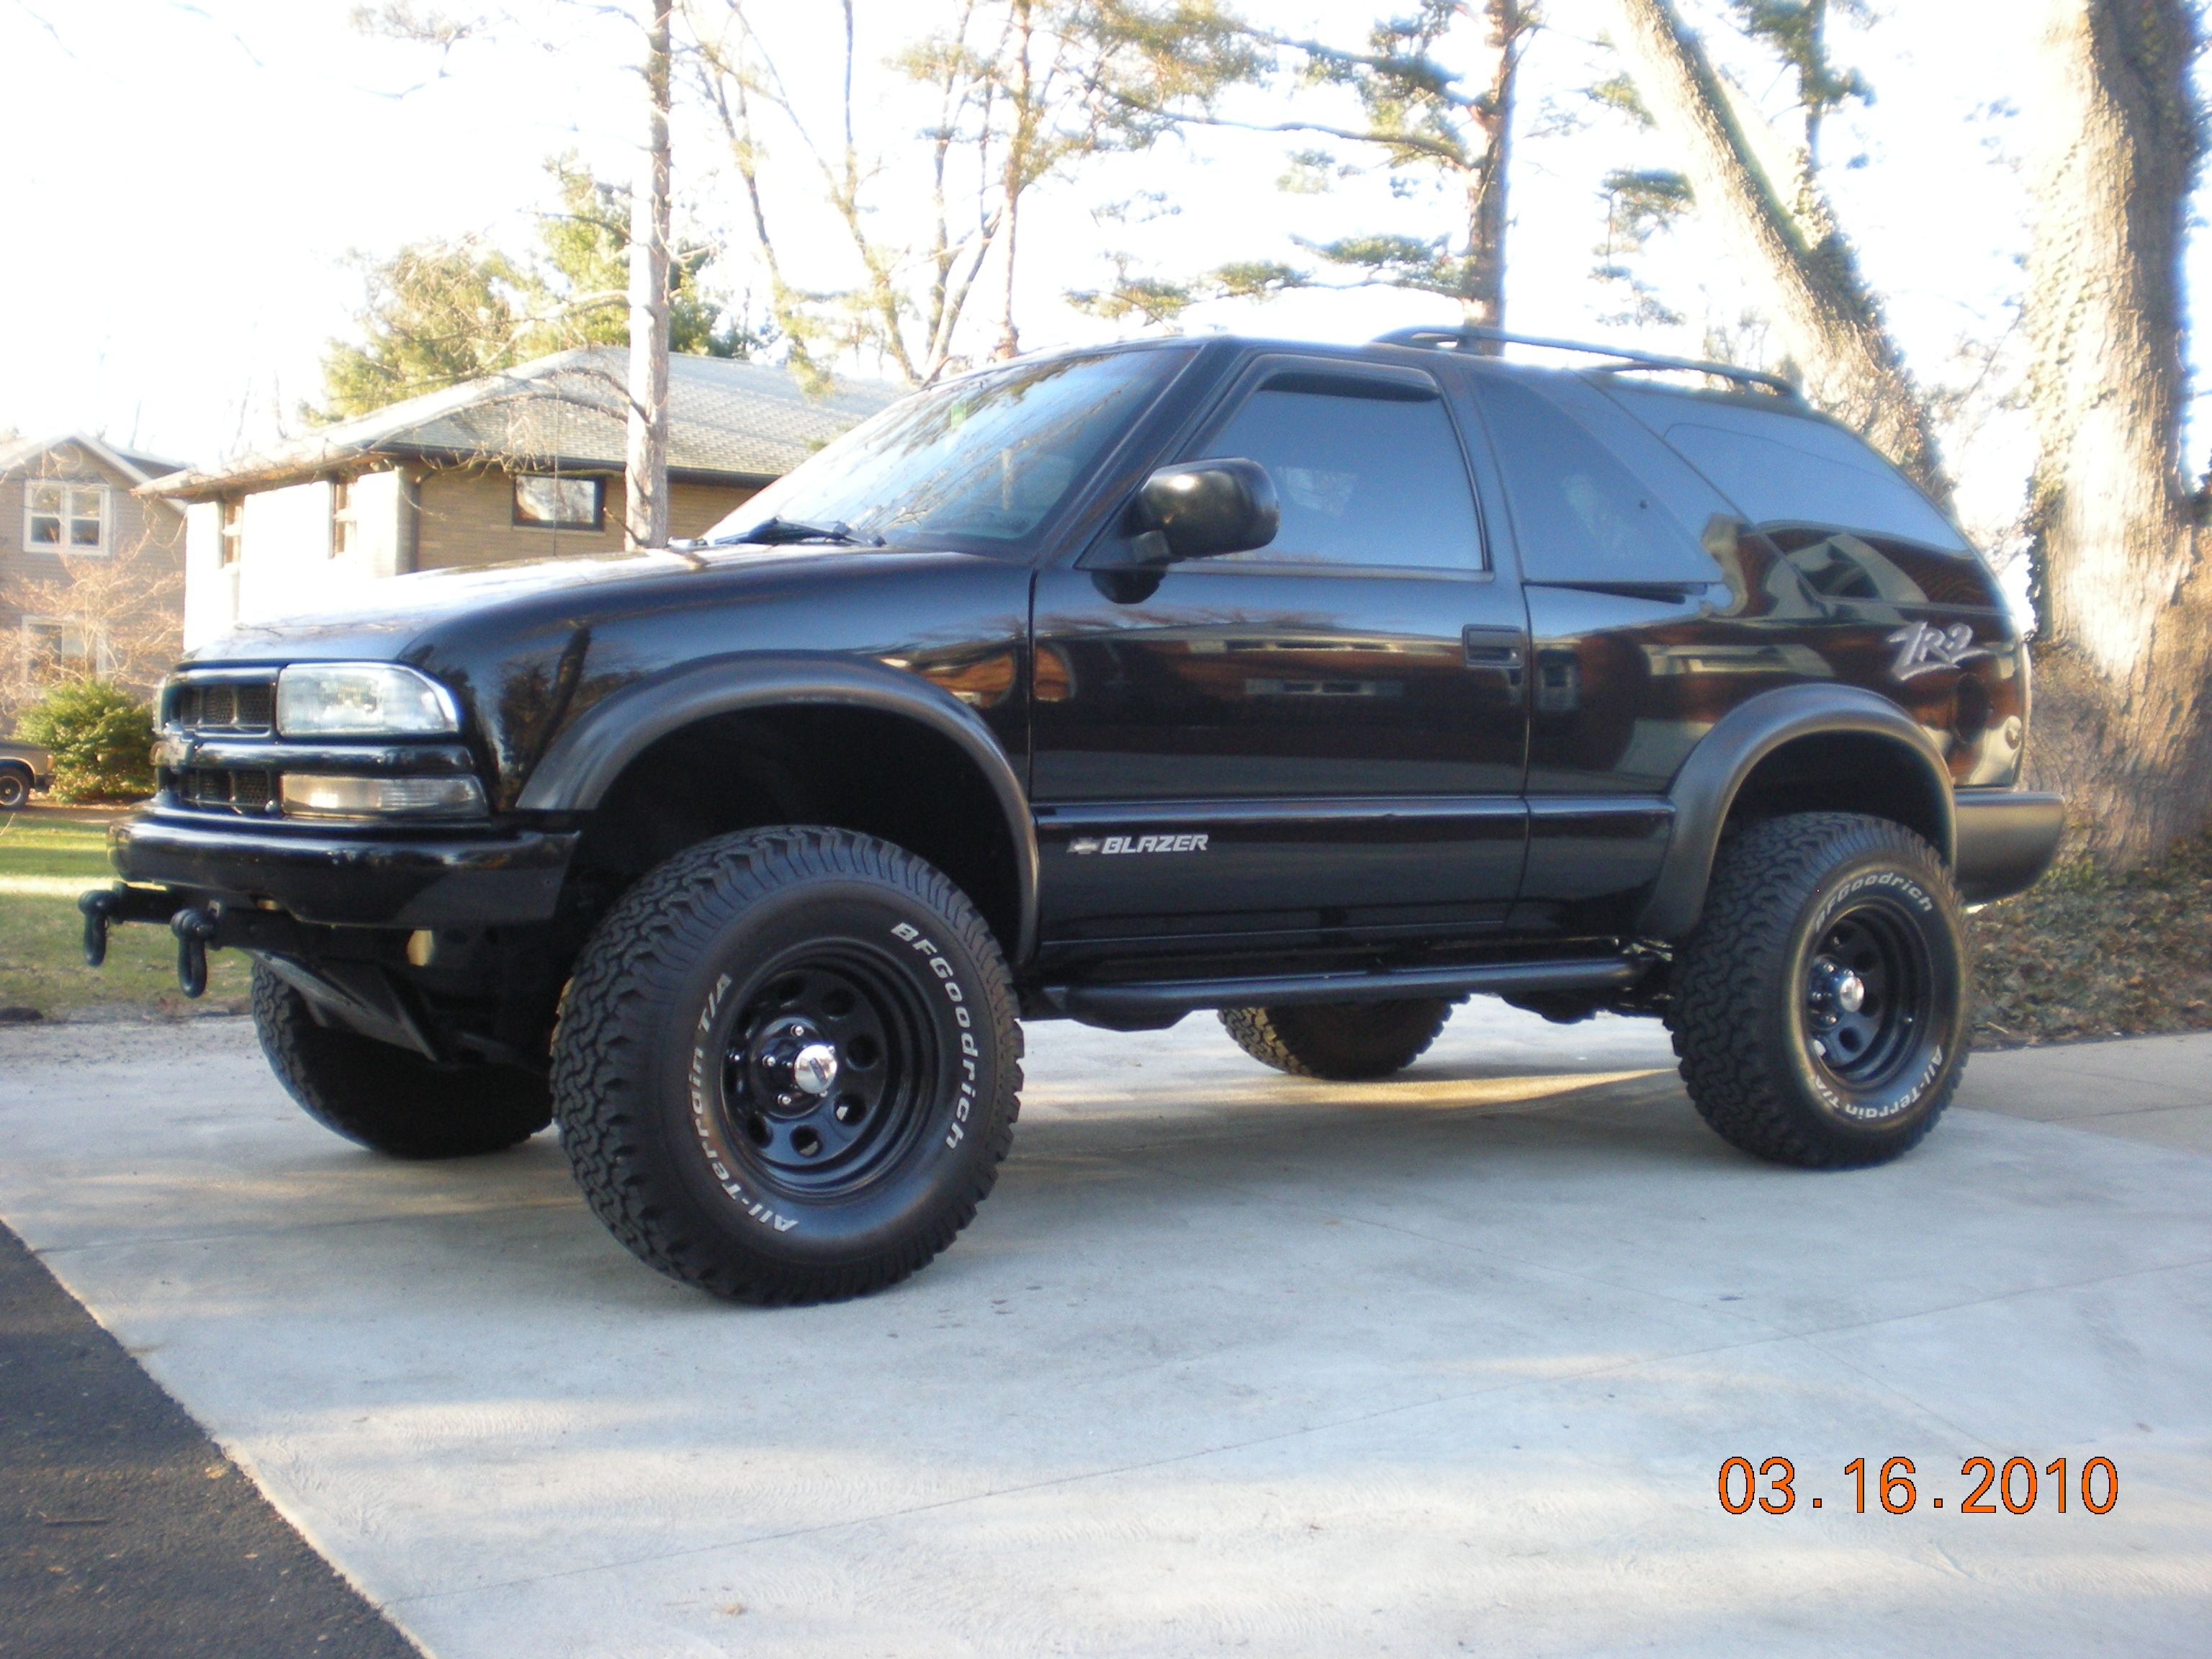 2002 Chevy Blazer Zr2 Modifications Engine Transmission K N Cold Air Intake Msd Ignition And Wires Optima Red Top B Chevy S10 Chevy Trailblazer S10 Blazer